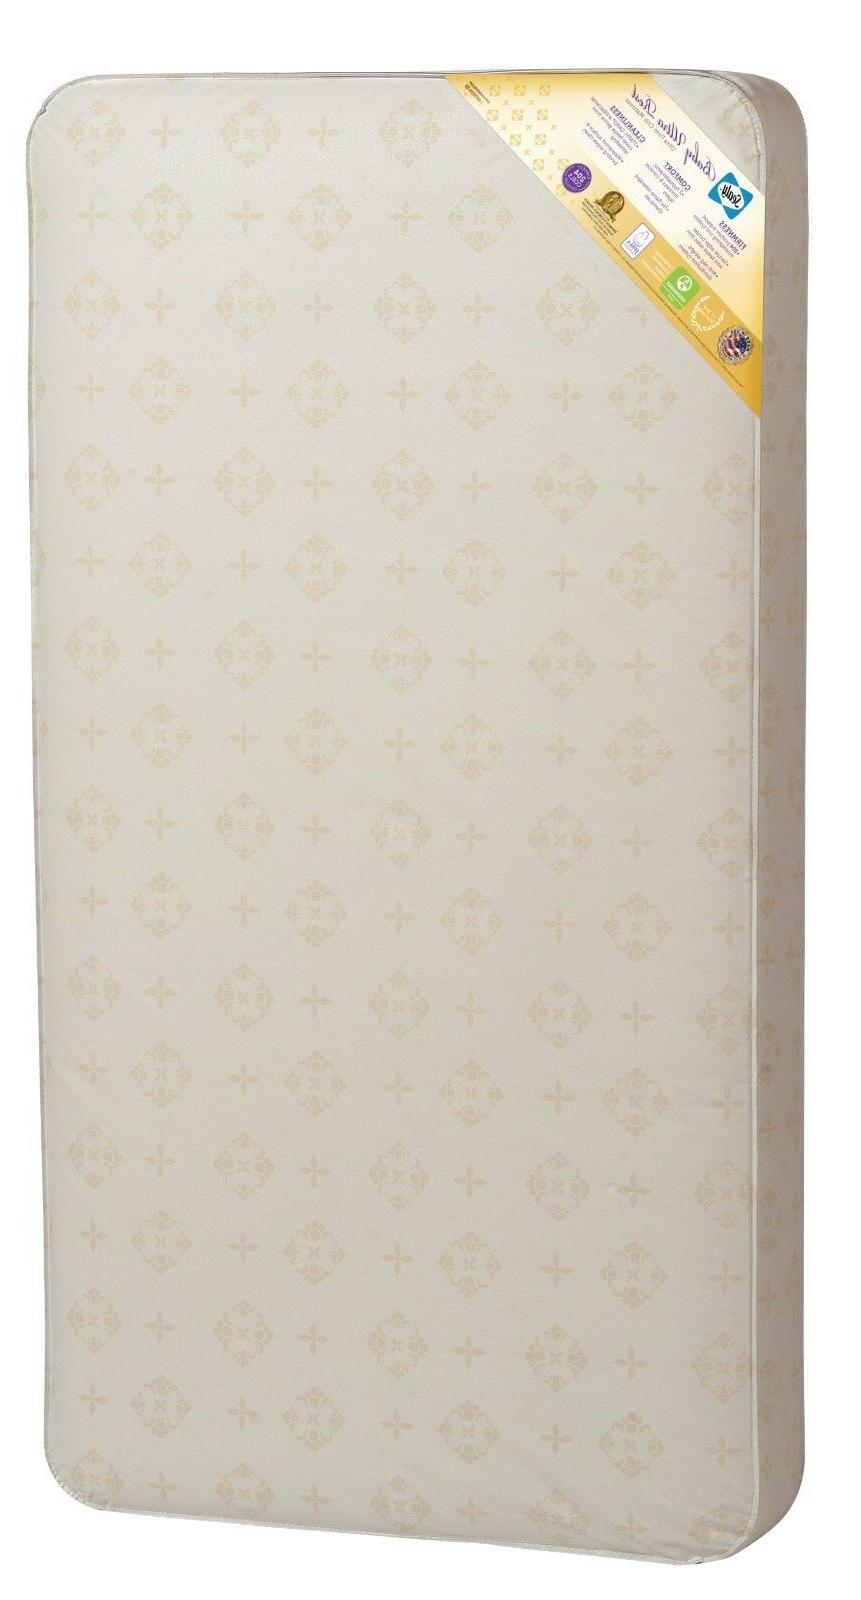 Sealy Baby Ultra Rest Crib and Toddler Bed Mattress